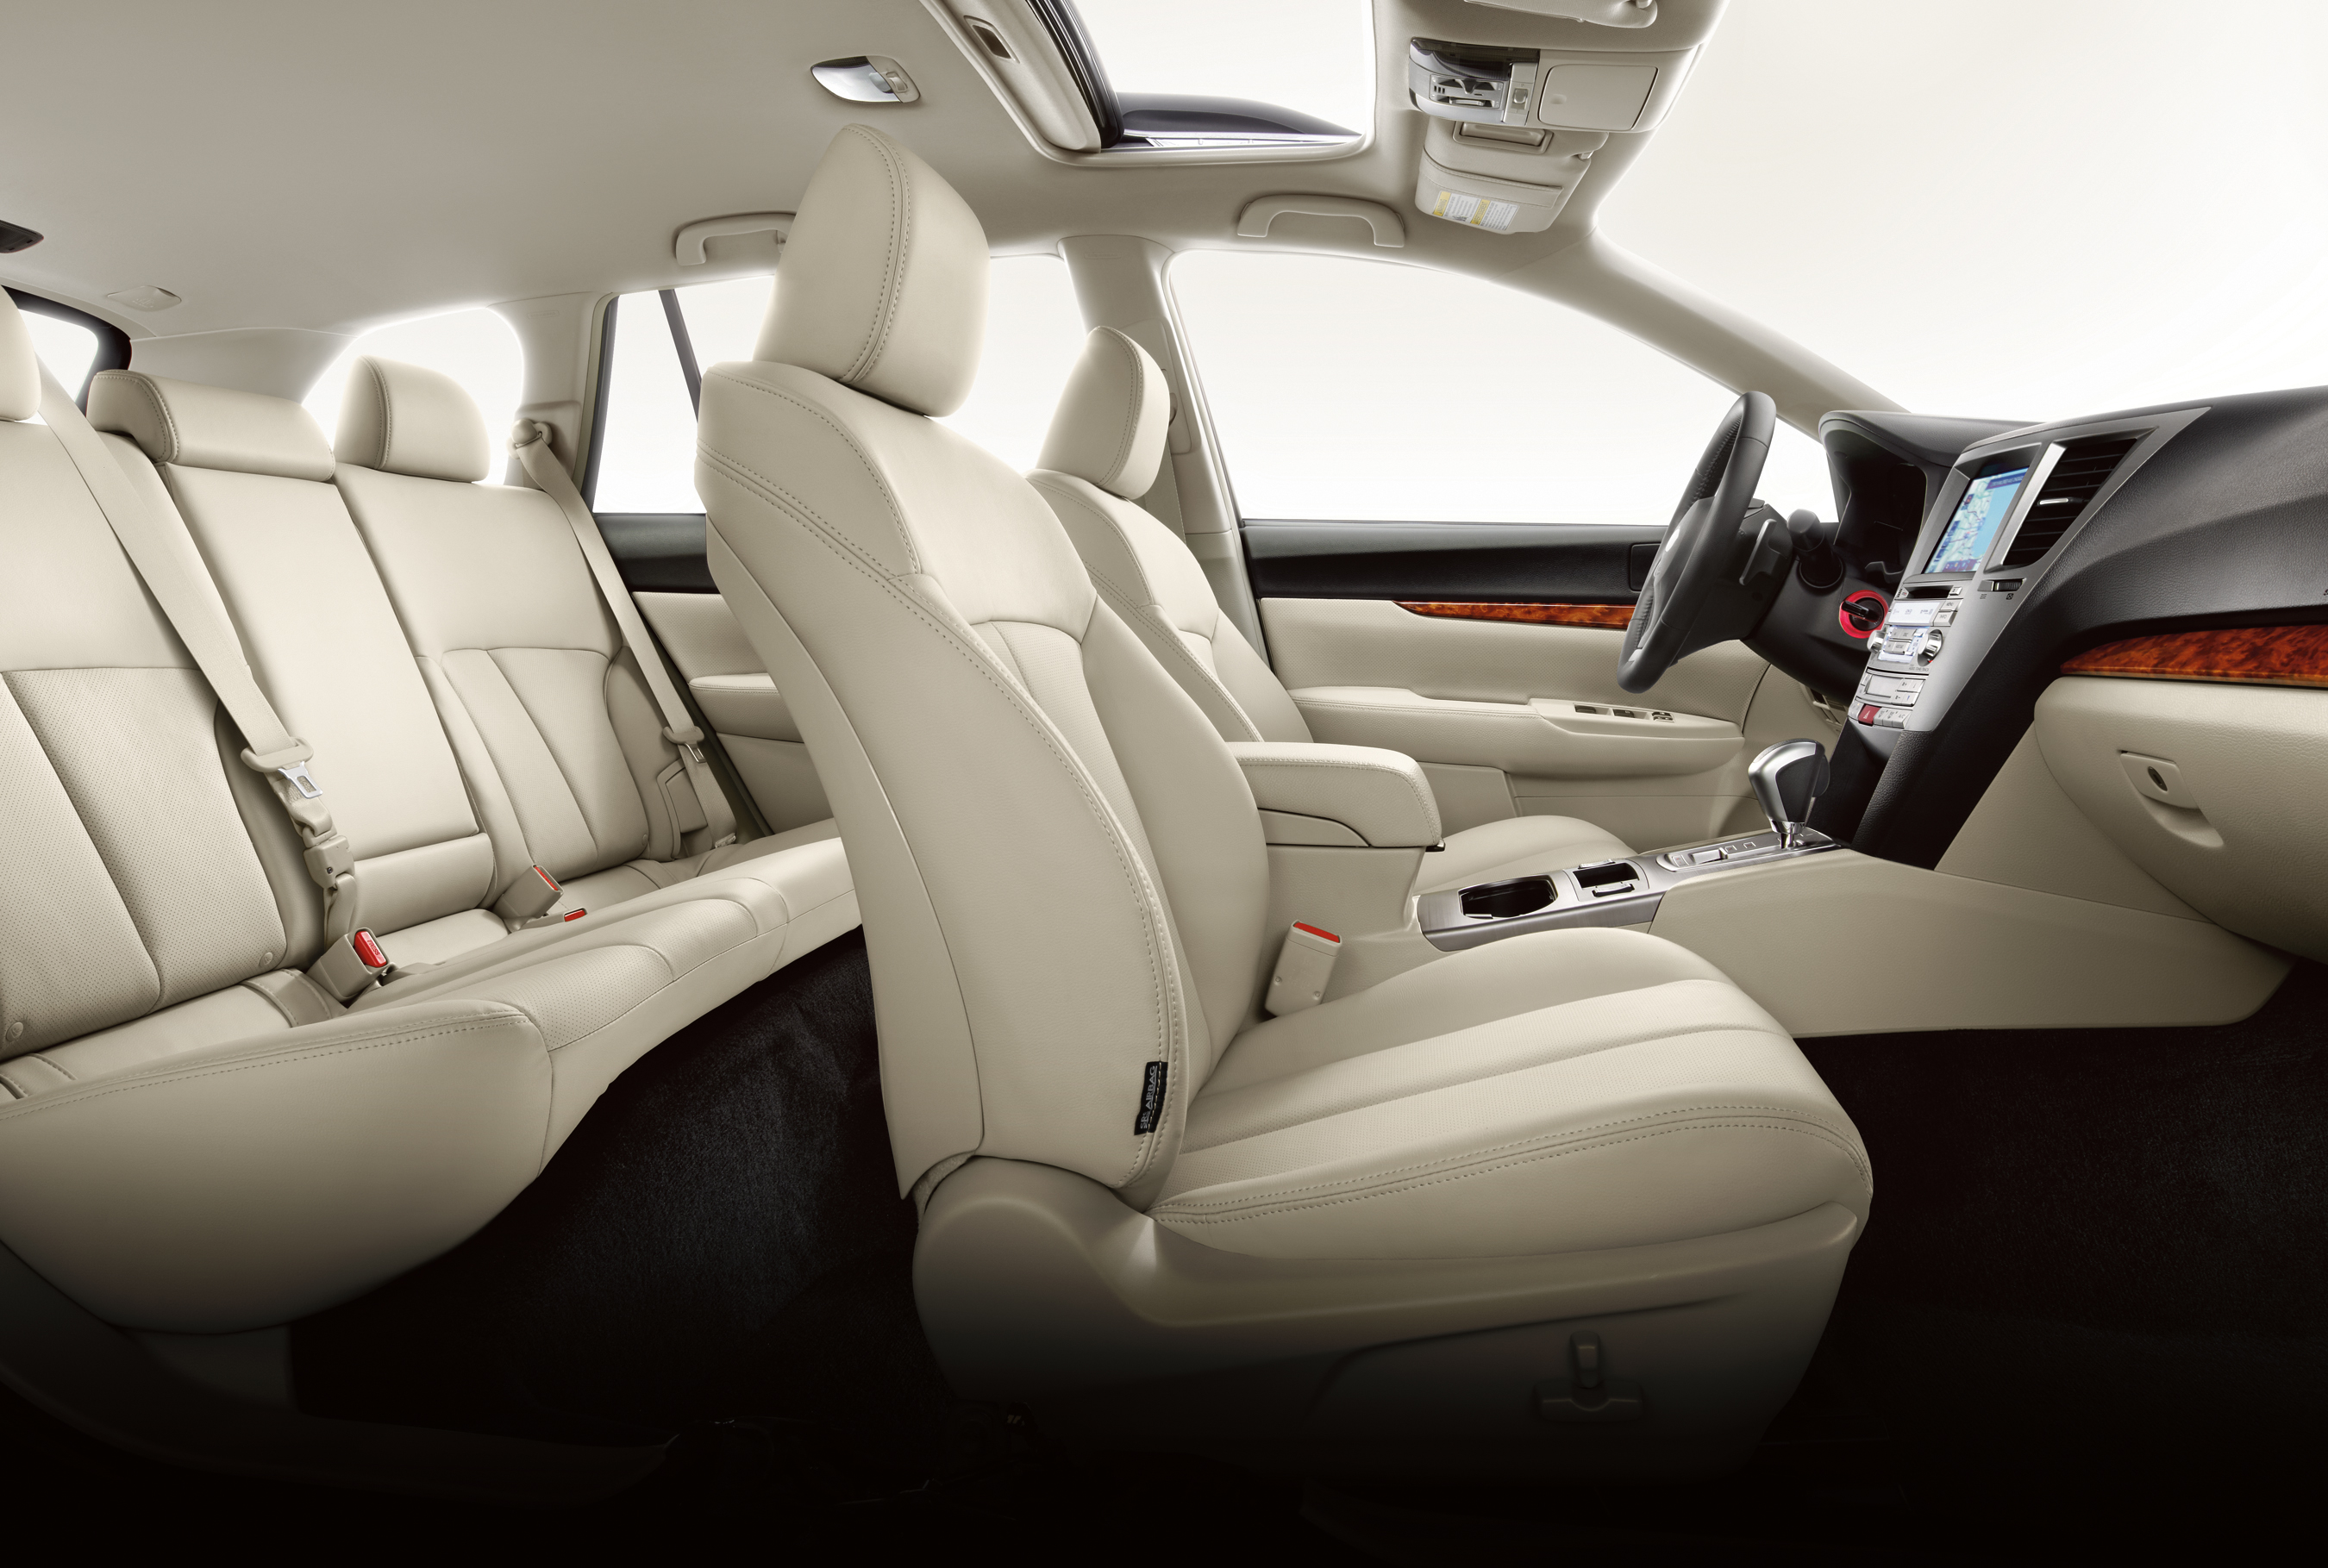 2012 Subaru Outback Interior Images Galleries With A Bite